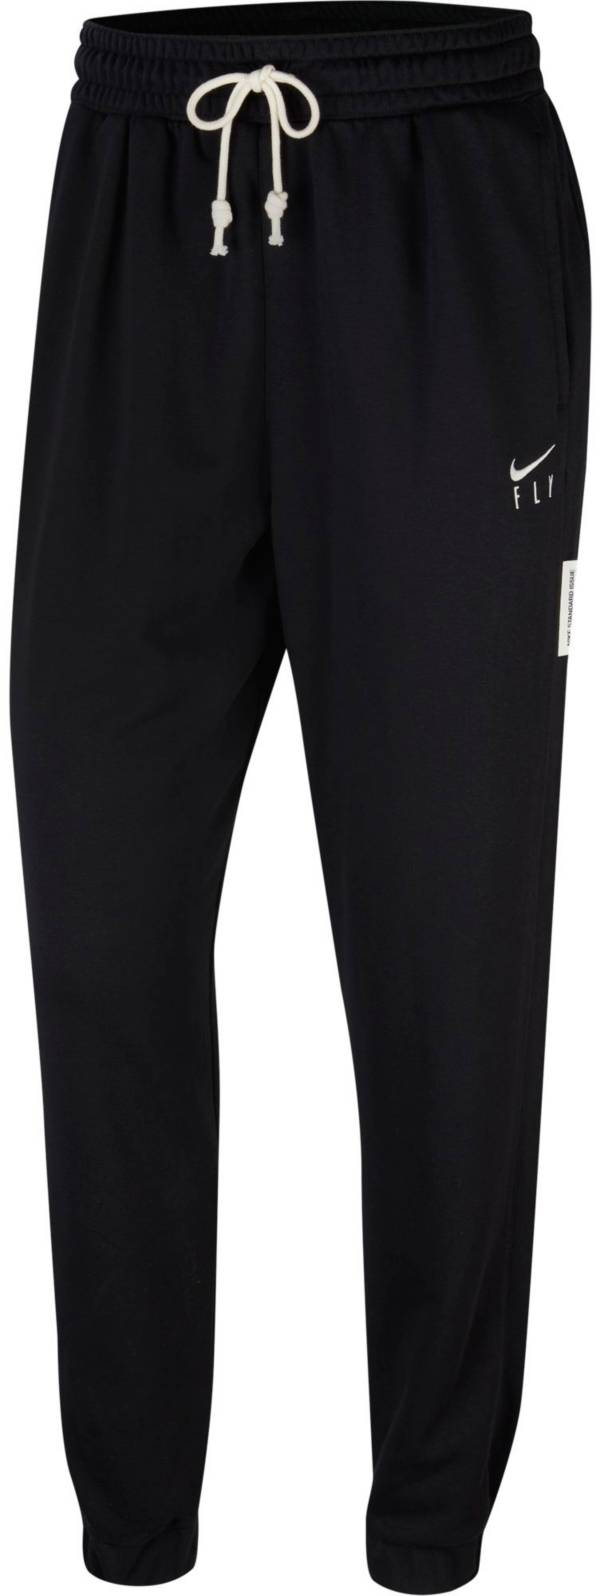 Nike Women's Swoosh Fly Standard Issue Basketball Pants product image